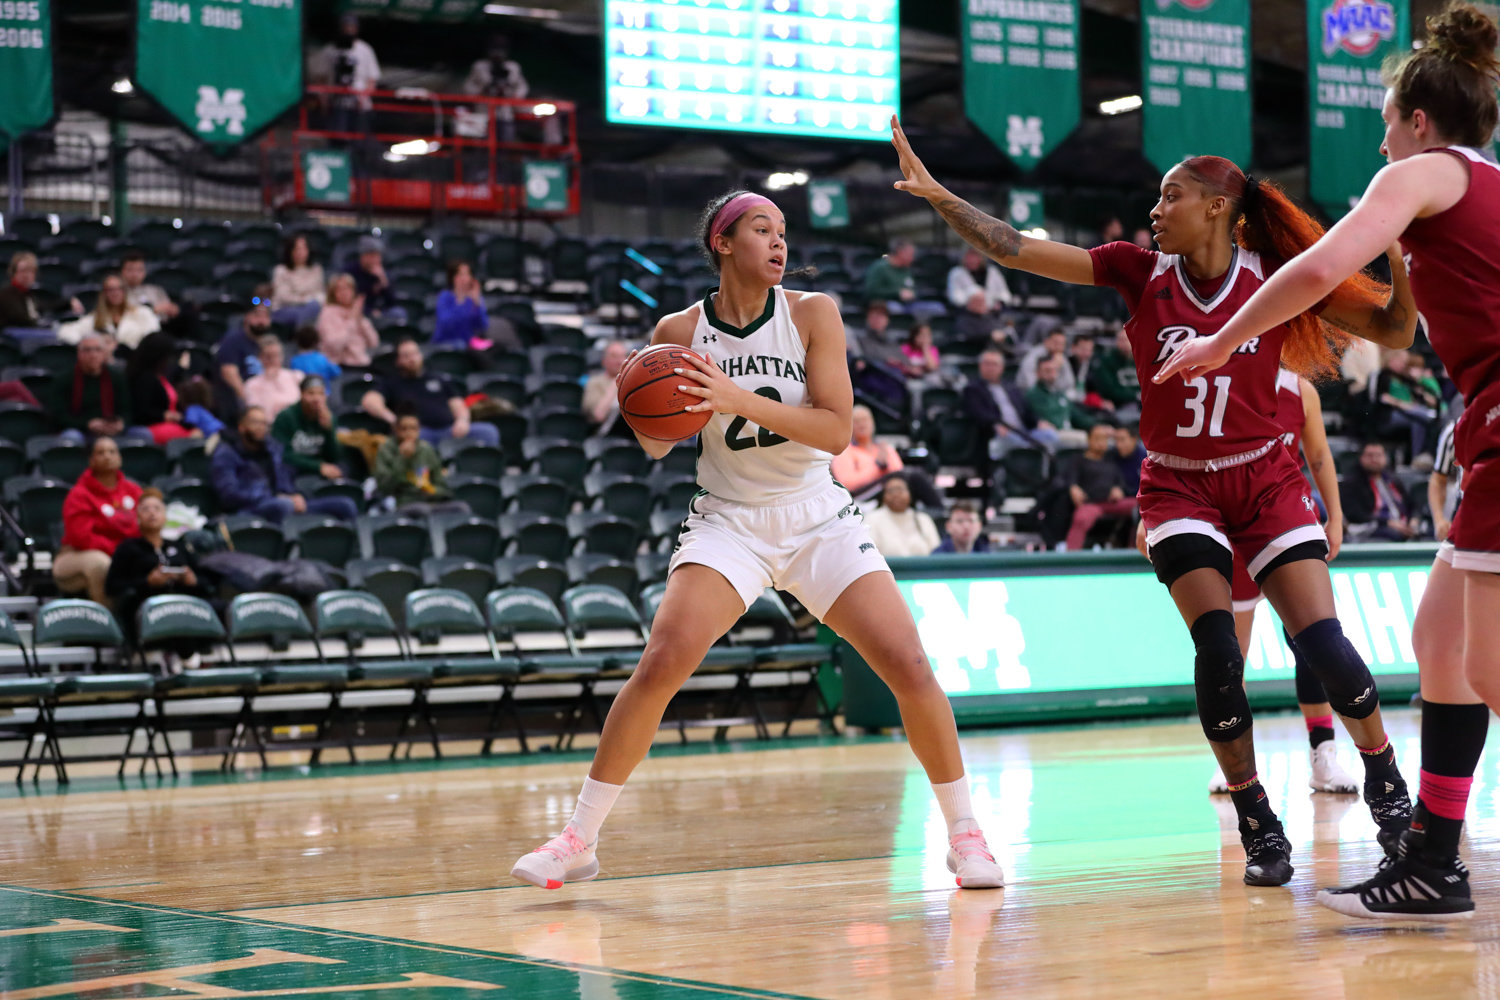 Manhattan junior Courtney Warley turned in a dominant performance against Monmouth last week, logging a double-double with 17 points and 10 rebounds in the Jaspers' victory over the Hawks.